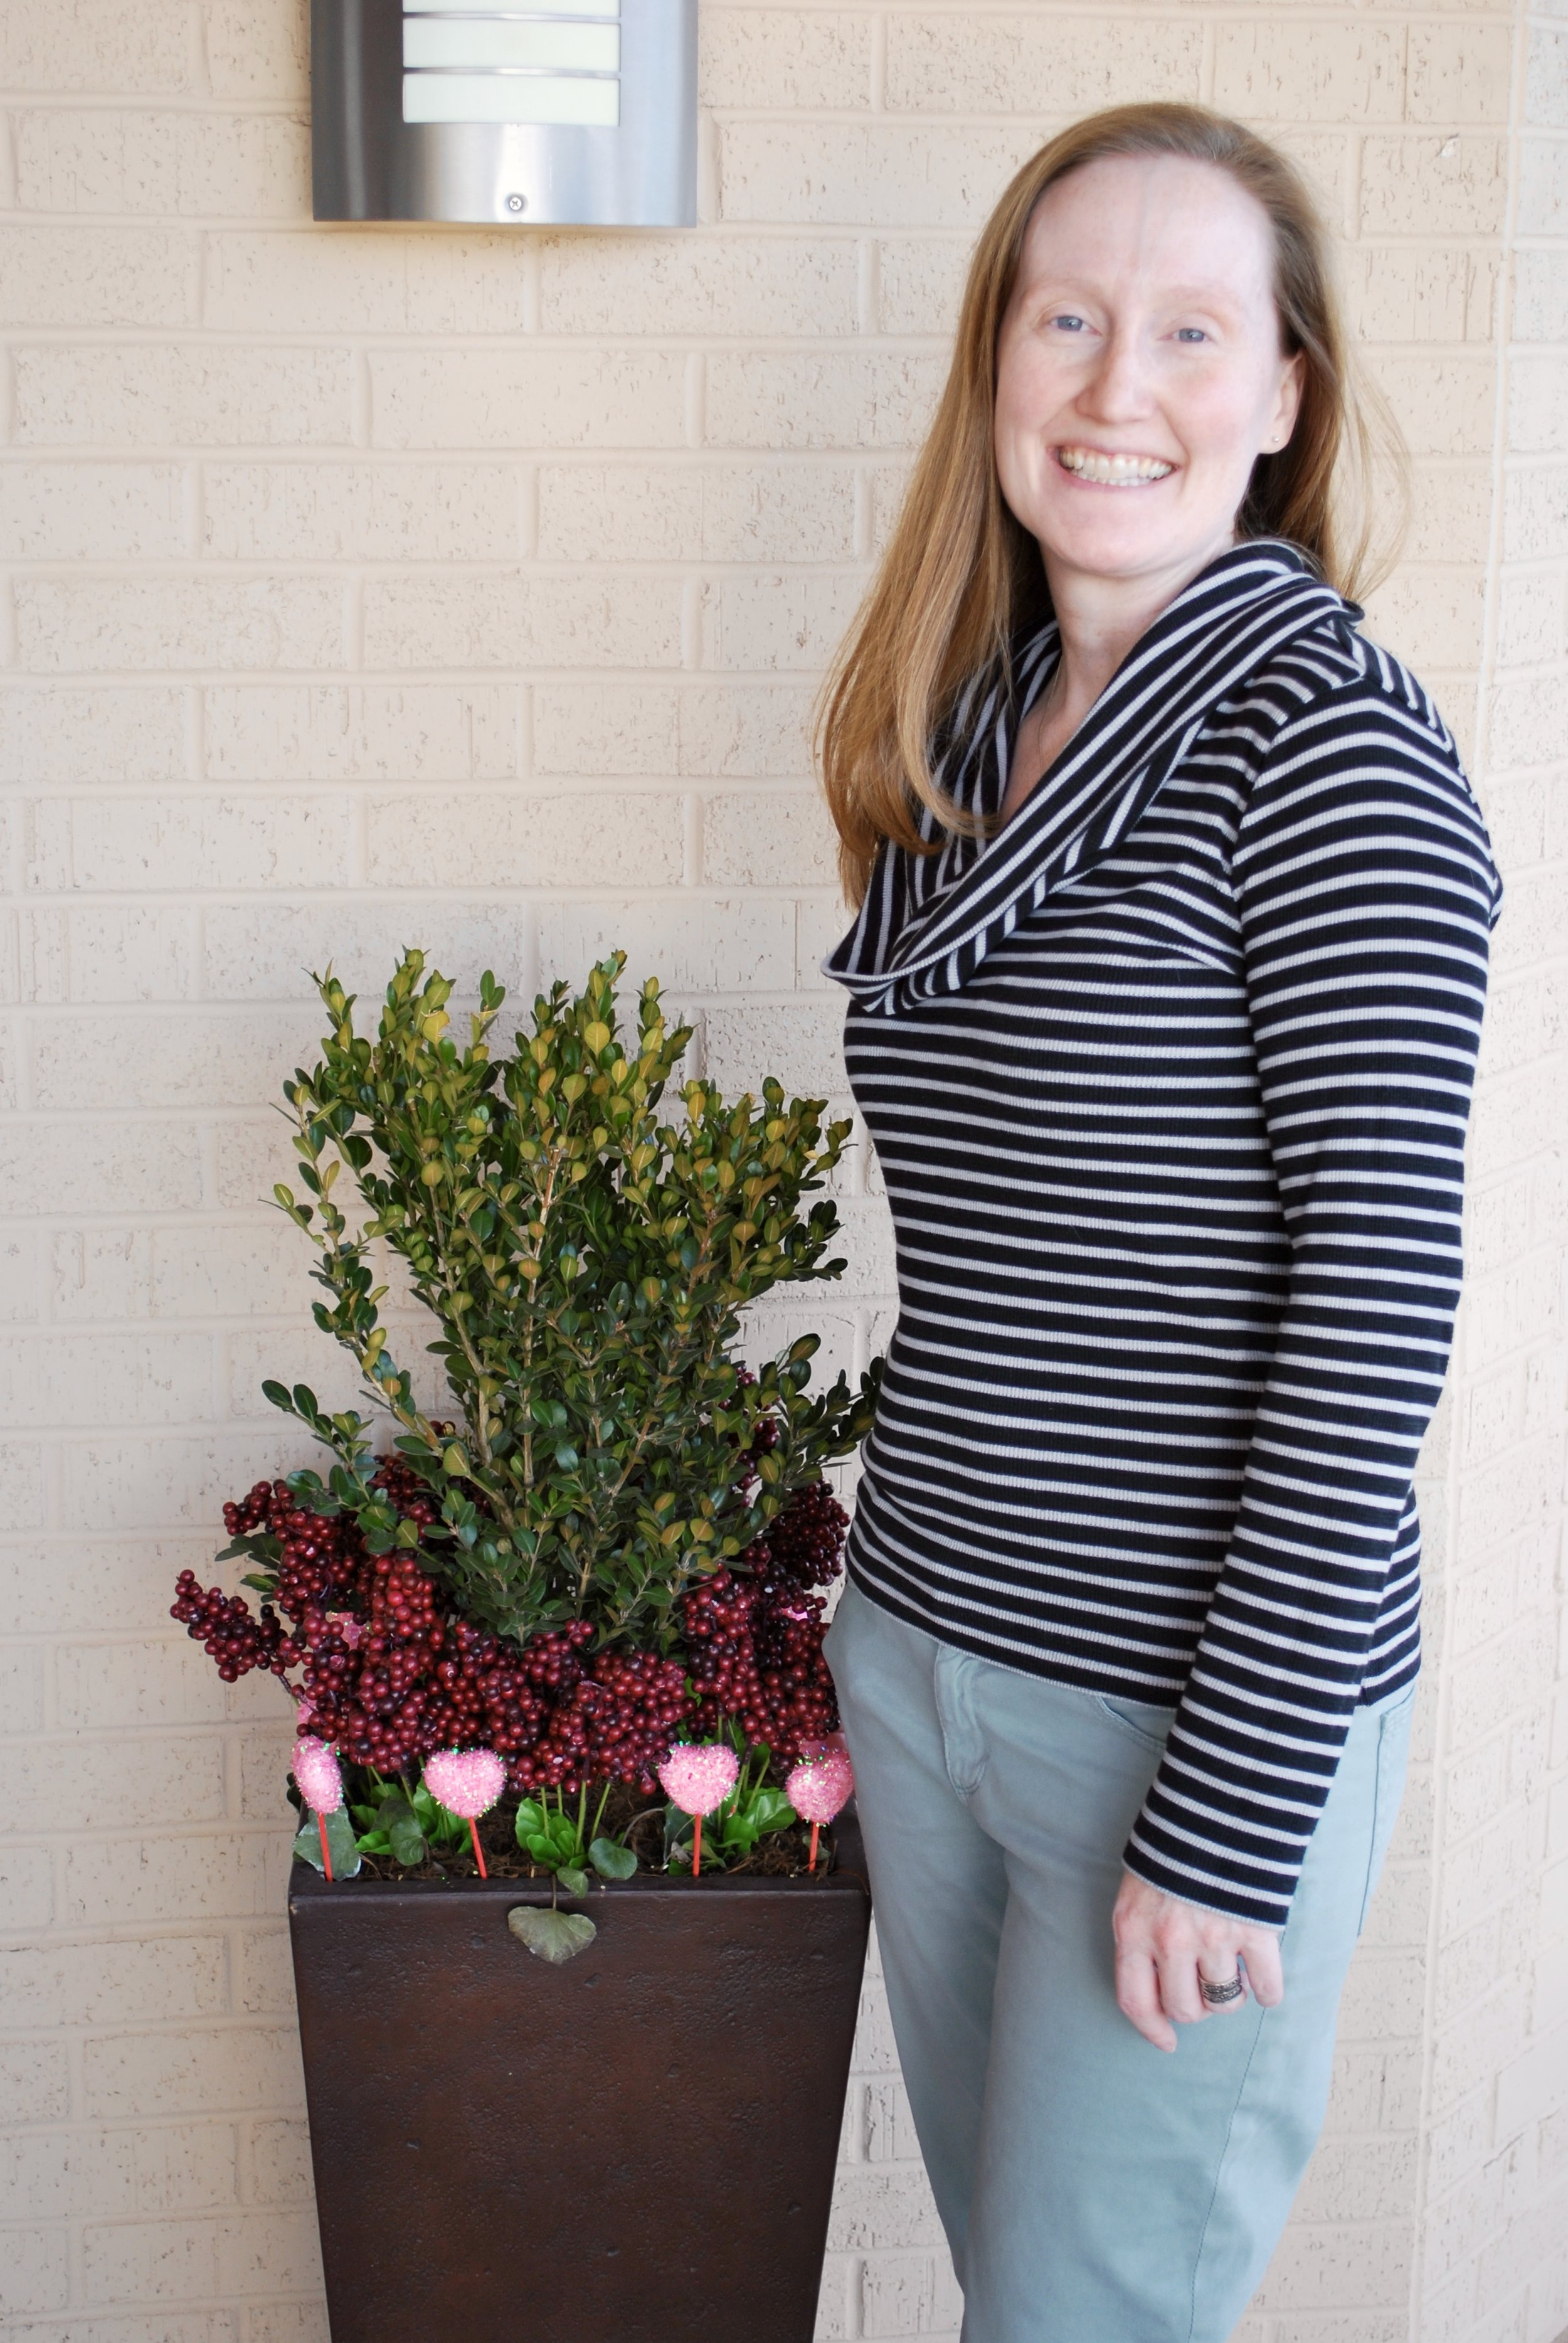 "Curb appeal shout out!  Morgan, the fabulous Owner of Green Bambino, contacted me over a year ago asking for help with outdoor pots at her store. Initially she needed new pots so I helped her find two planters that were just the right size and shape for her store front. I change out the plants and flowers on a seasonal basis and visit monthly to make sure they always look their best. Morgan recently shared this with me, which warmed my heart. ""Having you take care of this has taken a load off my plate and makes me smile every time I go past the planters."" Morgan understands that her customers' experience begins before they even enter her store. I so appreciate her love of curb appeal.  Green Bambino is OKC's #1 natural parenting resource, providing parents in our community with simple, affordable, responsible resources they need to be more thoughtful in their parenting and family lifestyle. They have a great selection selection of sustainable & eco-friendly products. The store is a hub for expert parenting education and natural-living information and a welcoming space for support, encouragement and community engagement. They are located at 5120 N. Shartel Avenue and can be reached at 405-848-2330 and  www.green-bambino.com . Green Bambino is a locally owned store and an asset to our community, go see Morgan and support small business."